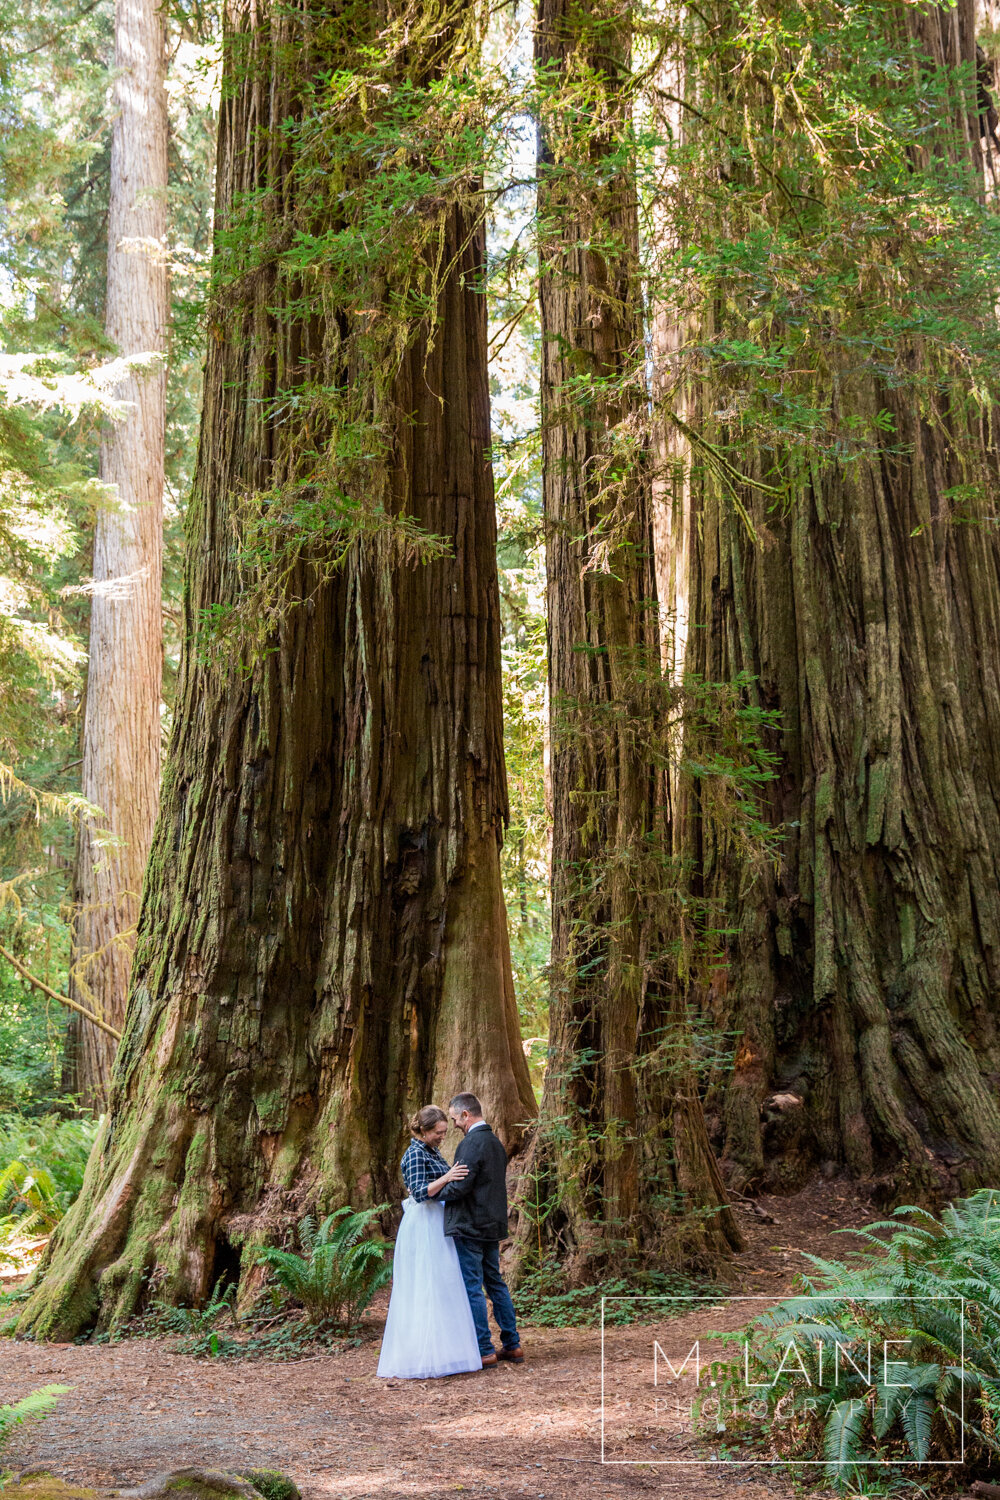 jedediah-smith-redwoods-state-park-wedding-3373.jpg